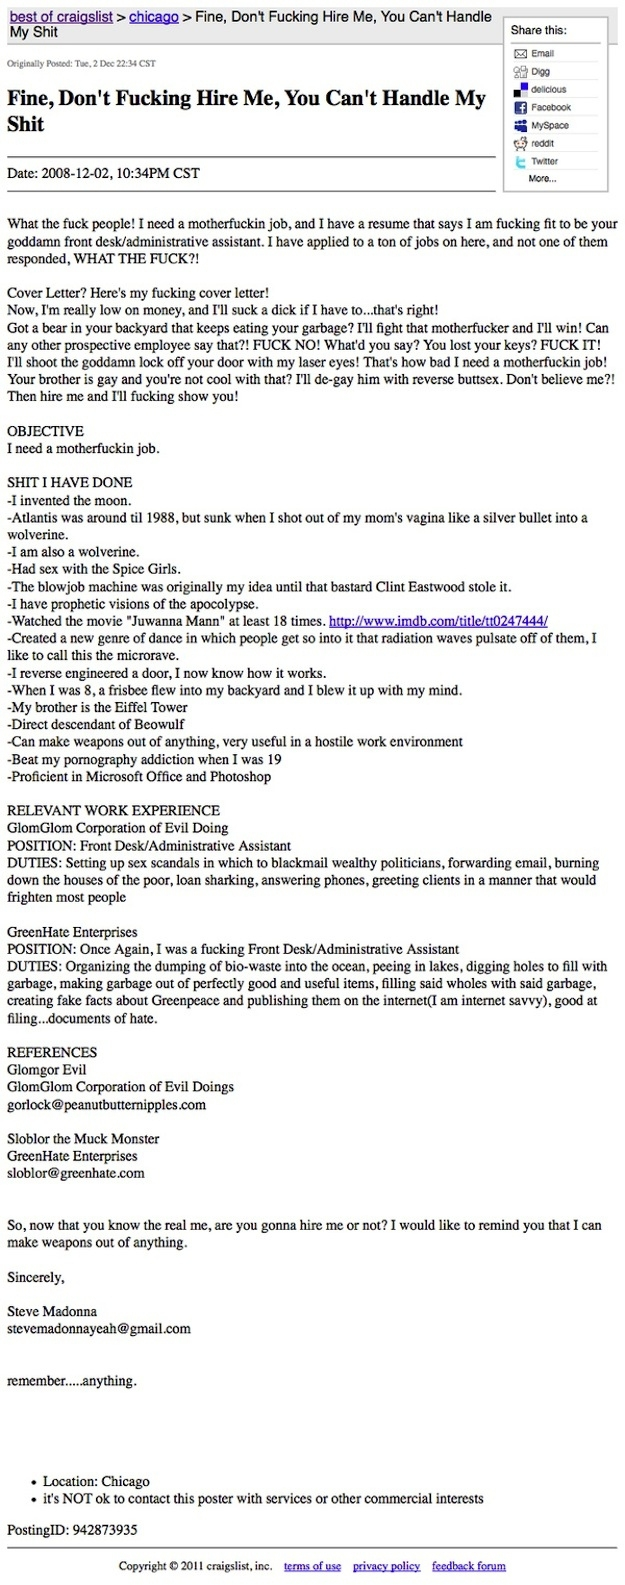 Really Awesome Resumes Built by real Awesome People.